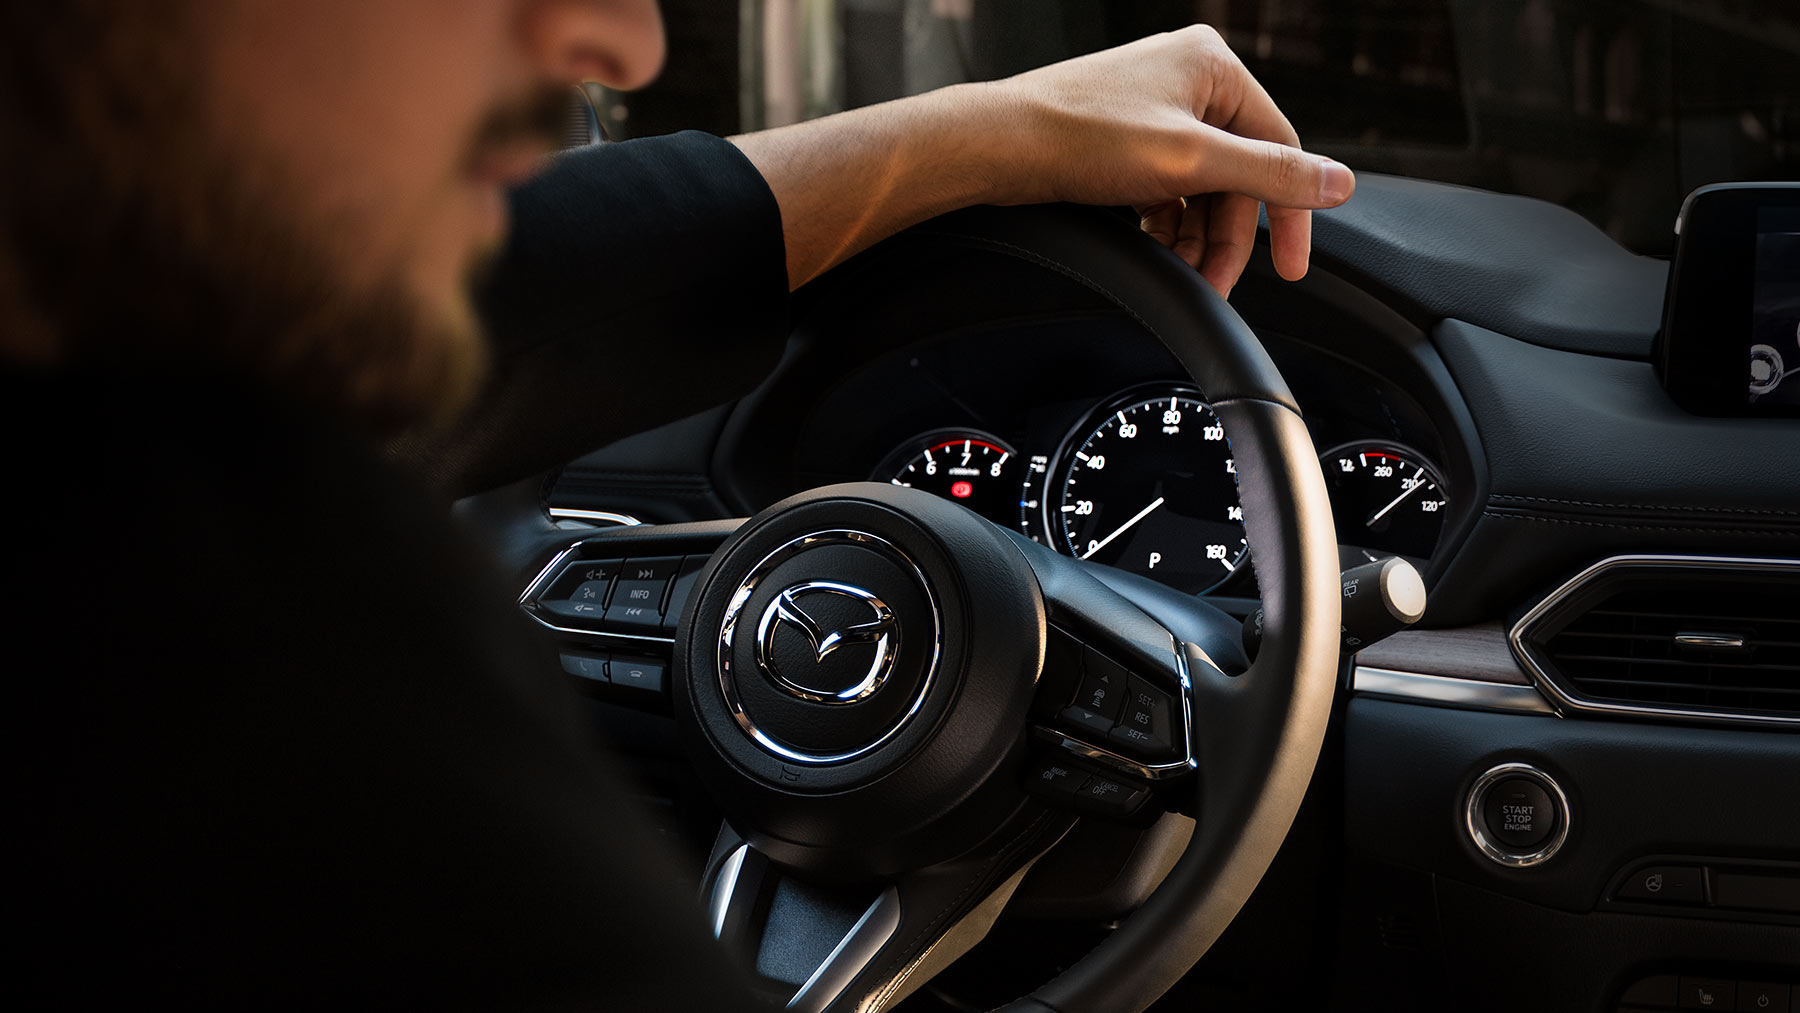 Enjoy the Journey in the 2019 Mazda CX-5